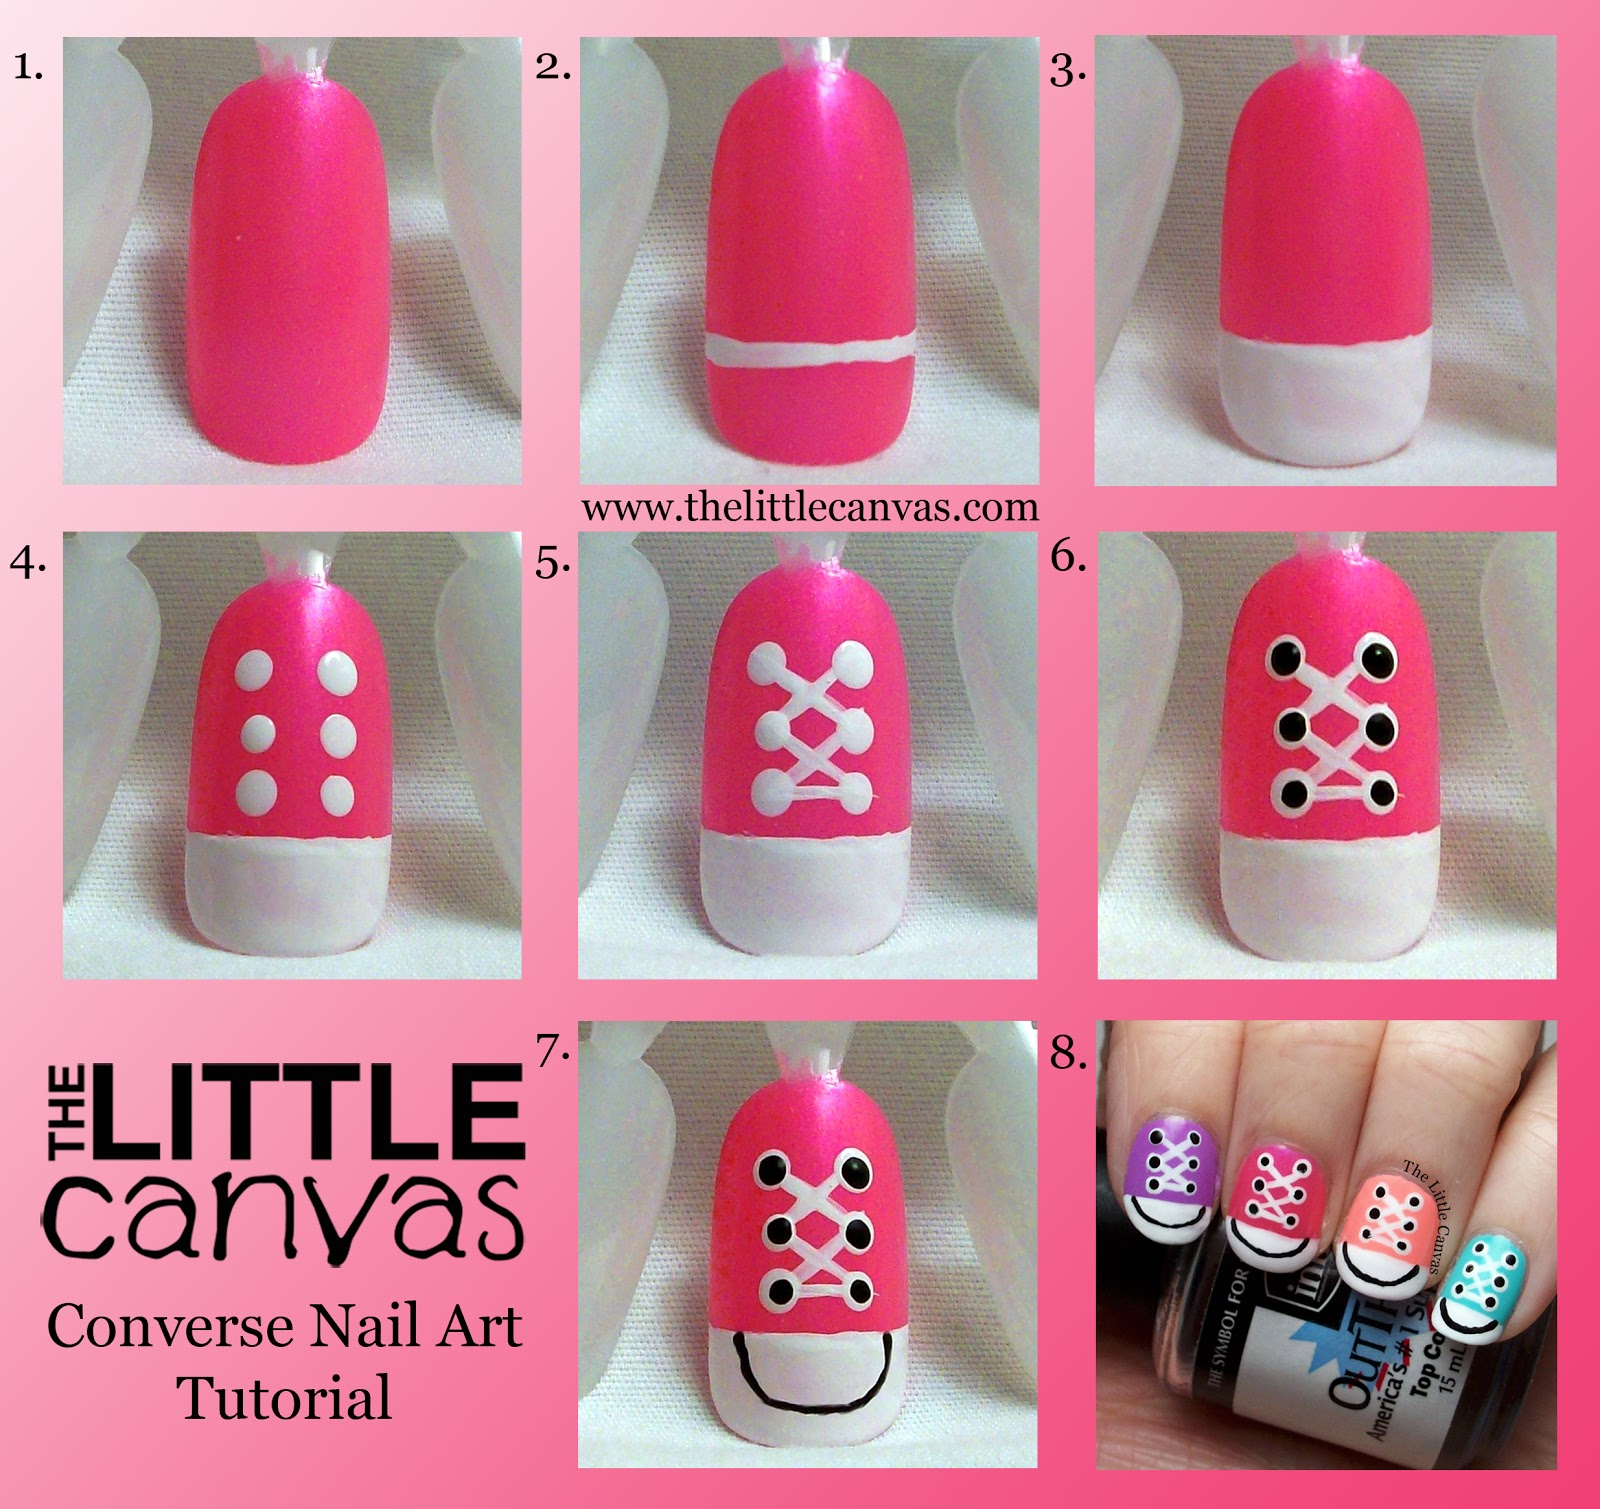 Nail Art Couture Converse Nail Art: Converse Nail Art Take 2 + Tutorial!